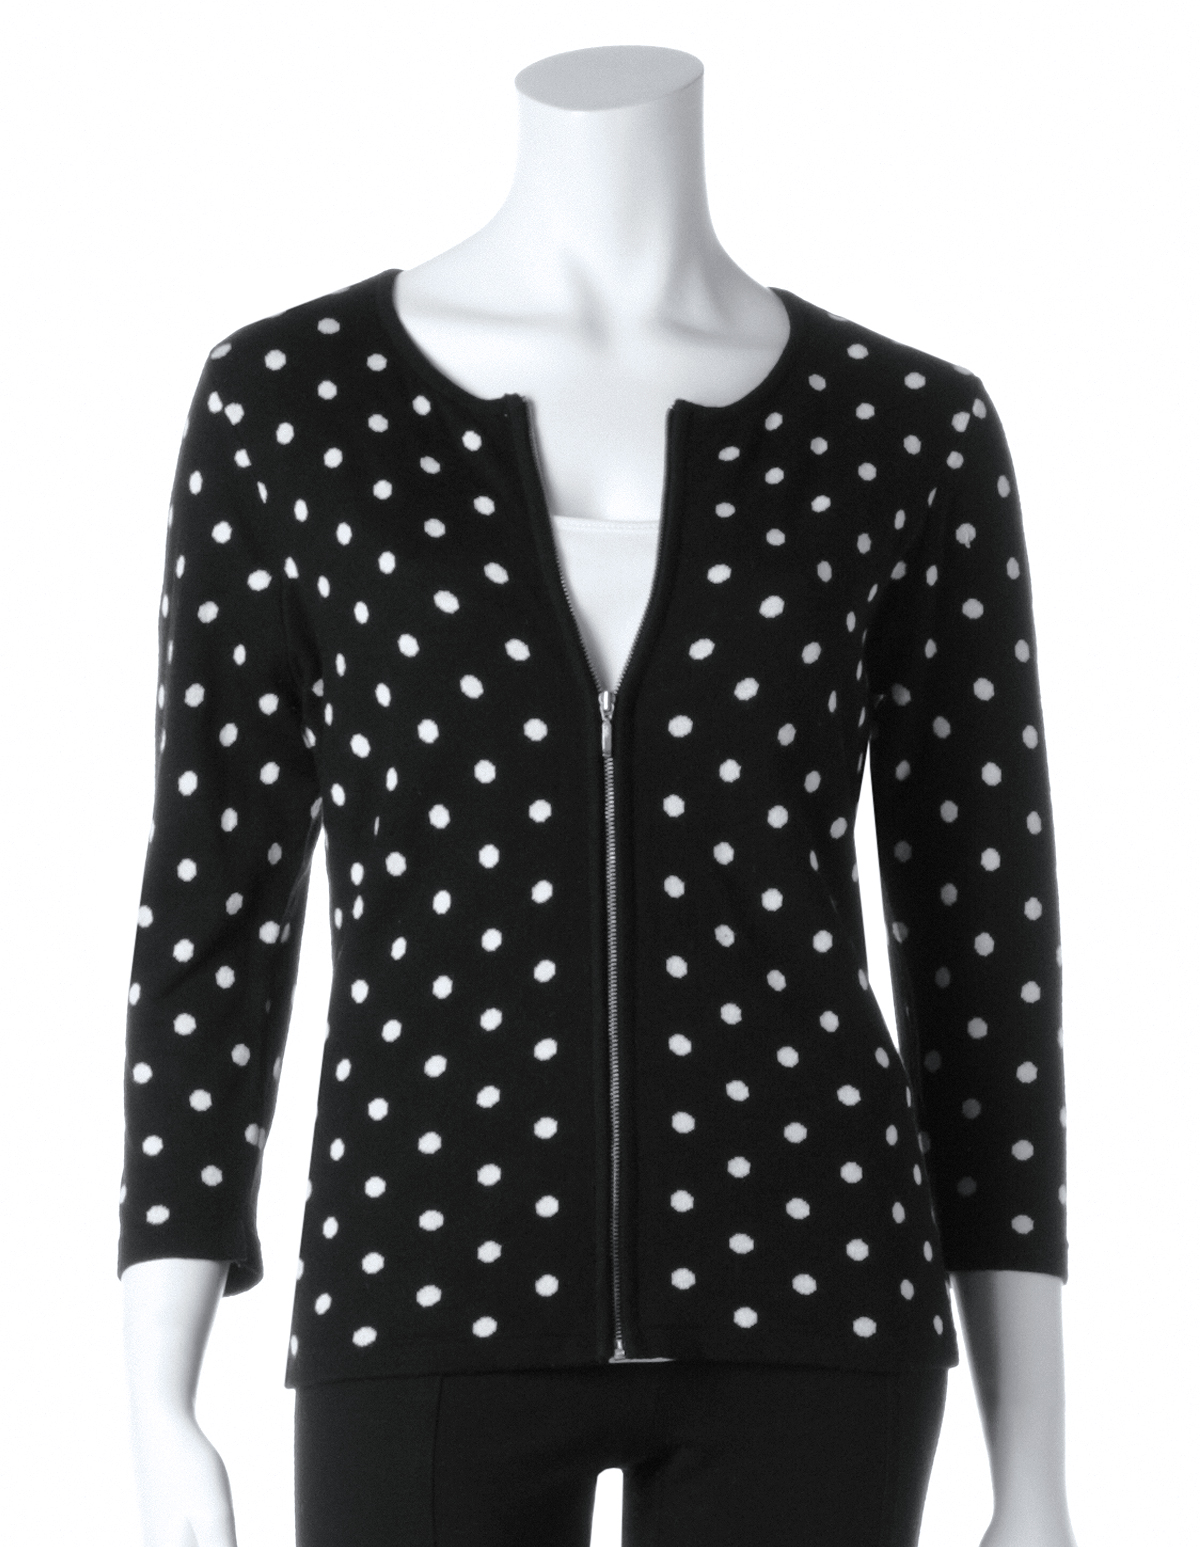 These polka dots hit the spot! This prep-inspired crew neck sweater style is constructed with stretchy-soft double knit teal fabric. A retro black polka dot print .